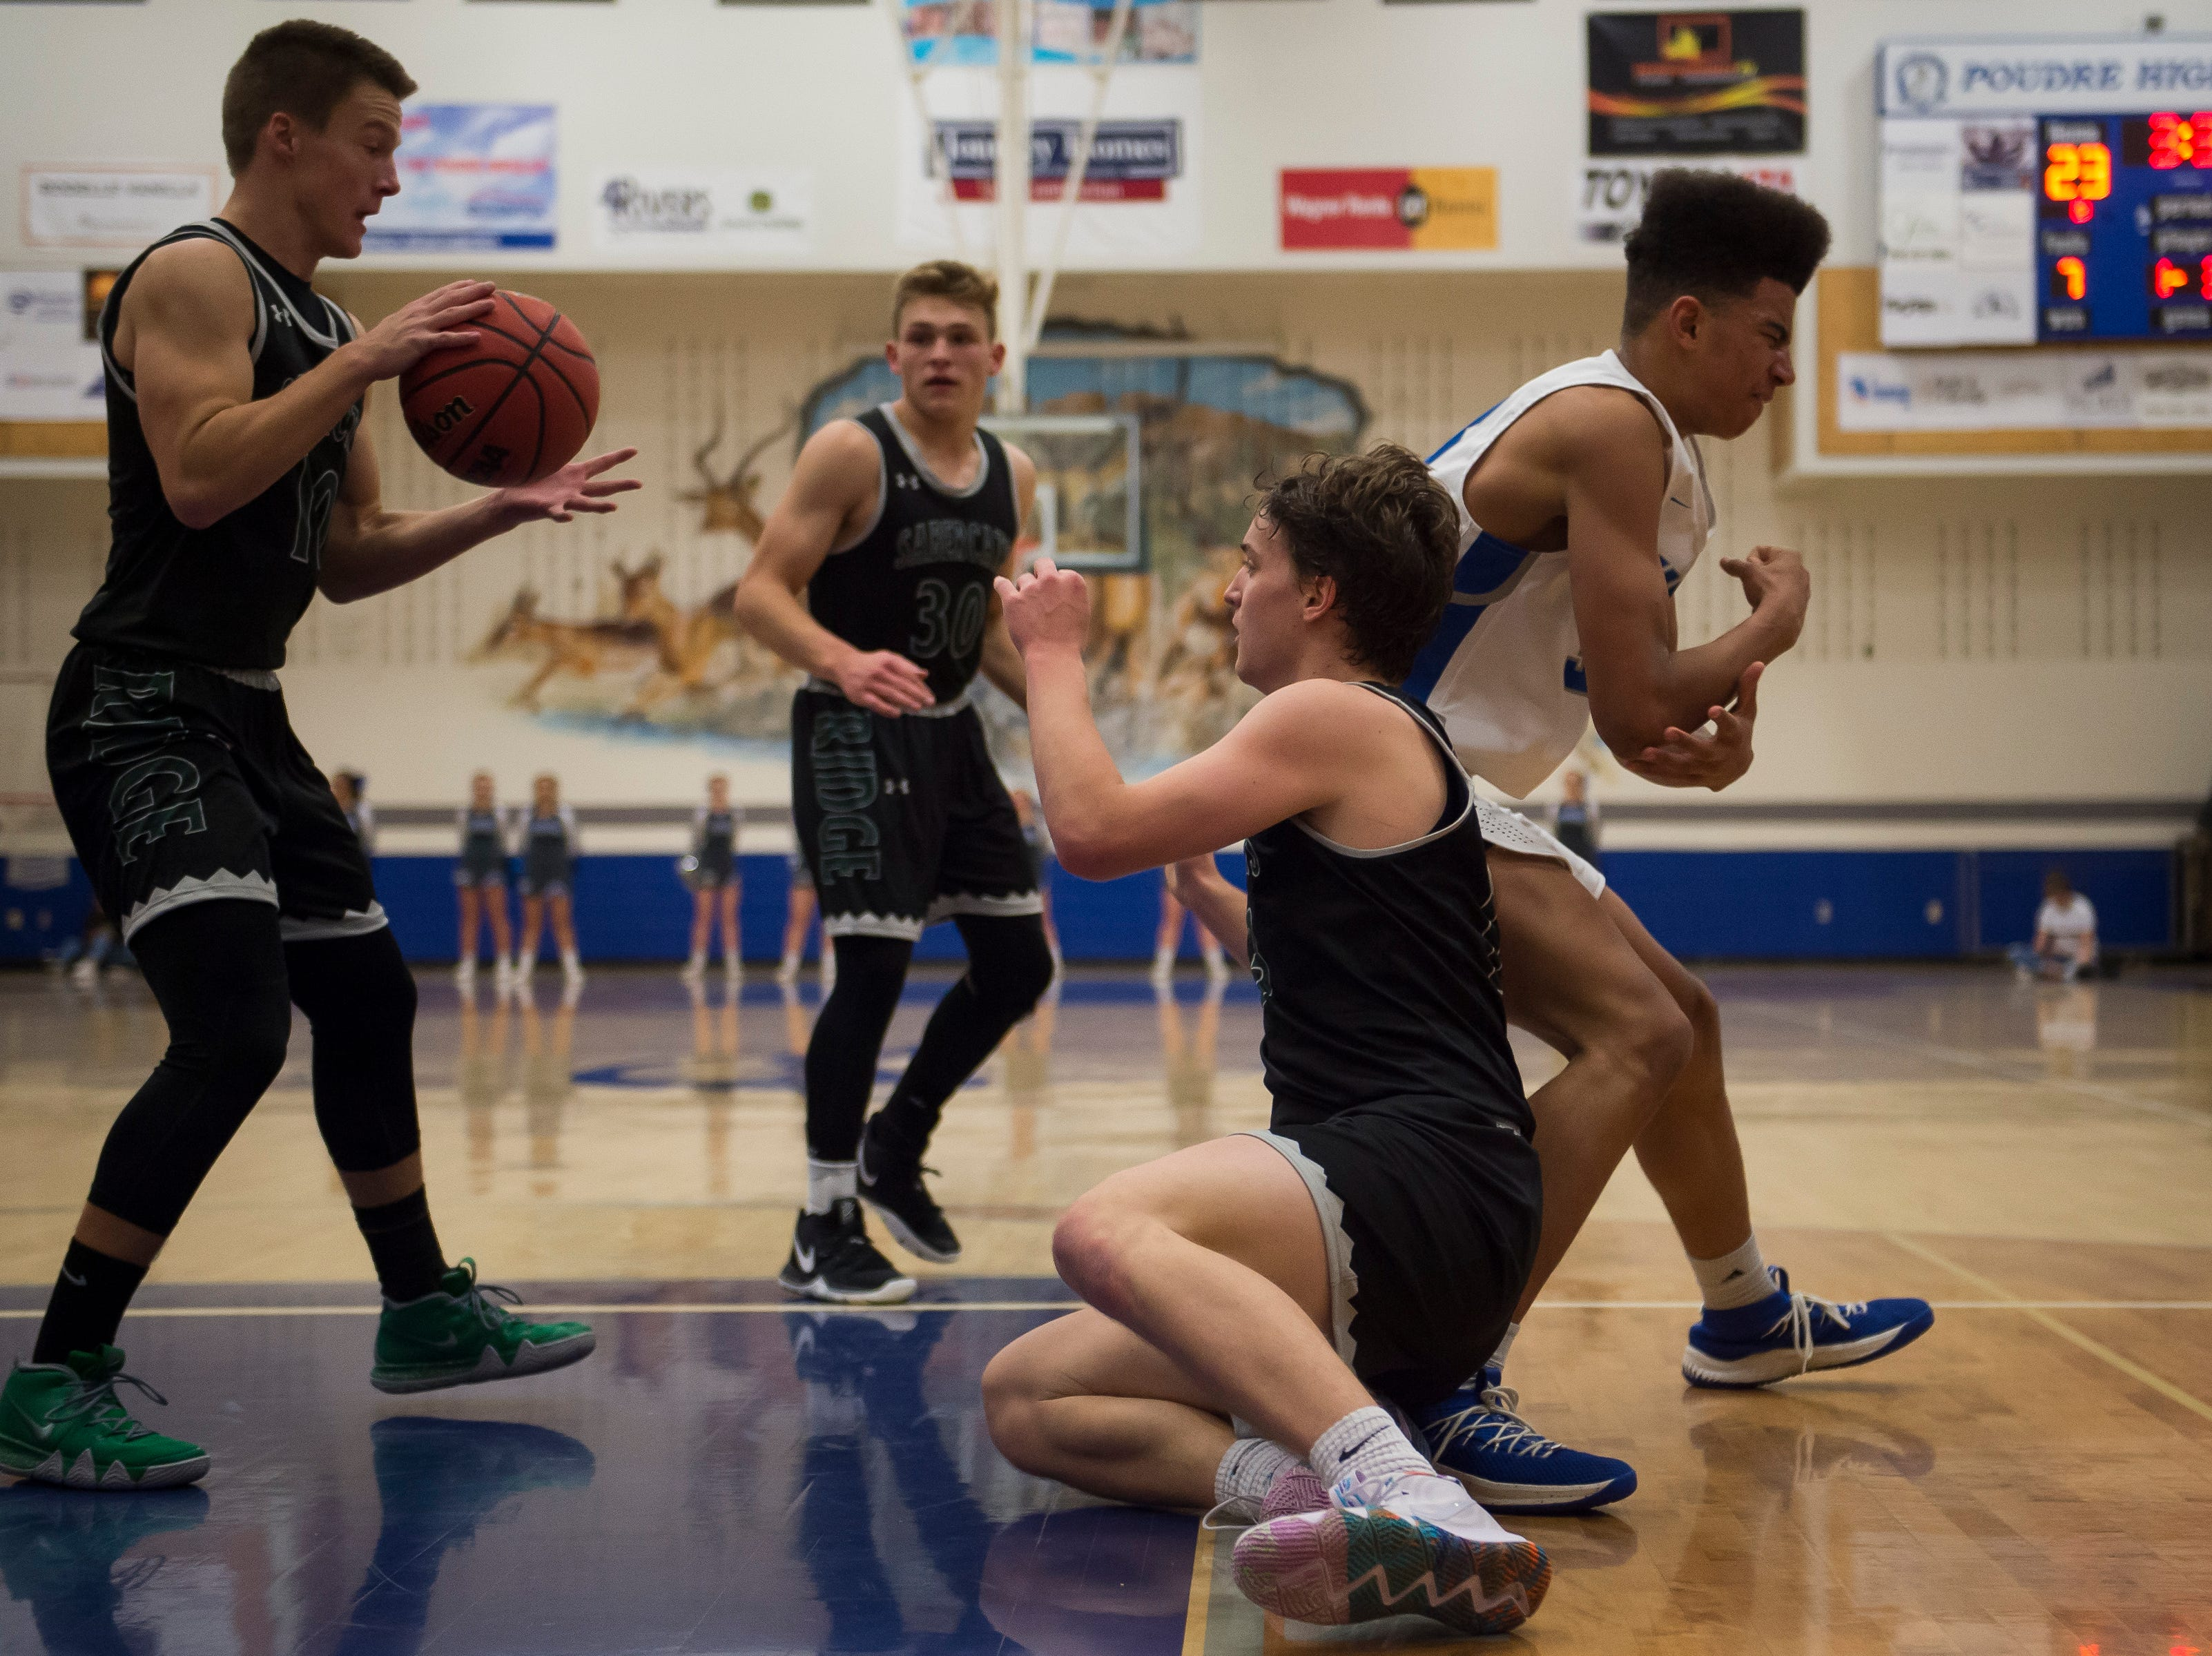 Fossil Ridge High School senior Holdyn Kawcak (13) passes the ball to senior Drew Cornmesser (10) after stealing it away from Poudre High School senior Damian Forrest (33) on Tuesday, Dec. 4, 2018, at Poudre High School on Fort Collins, Colo.